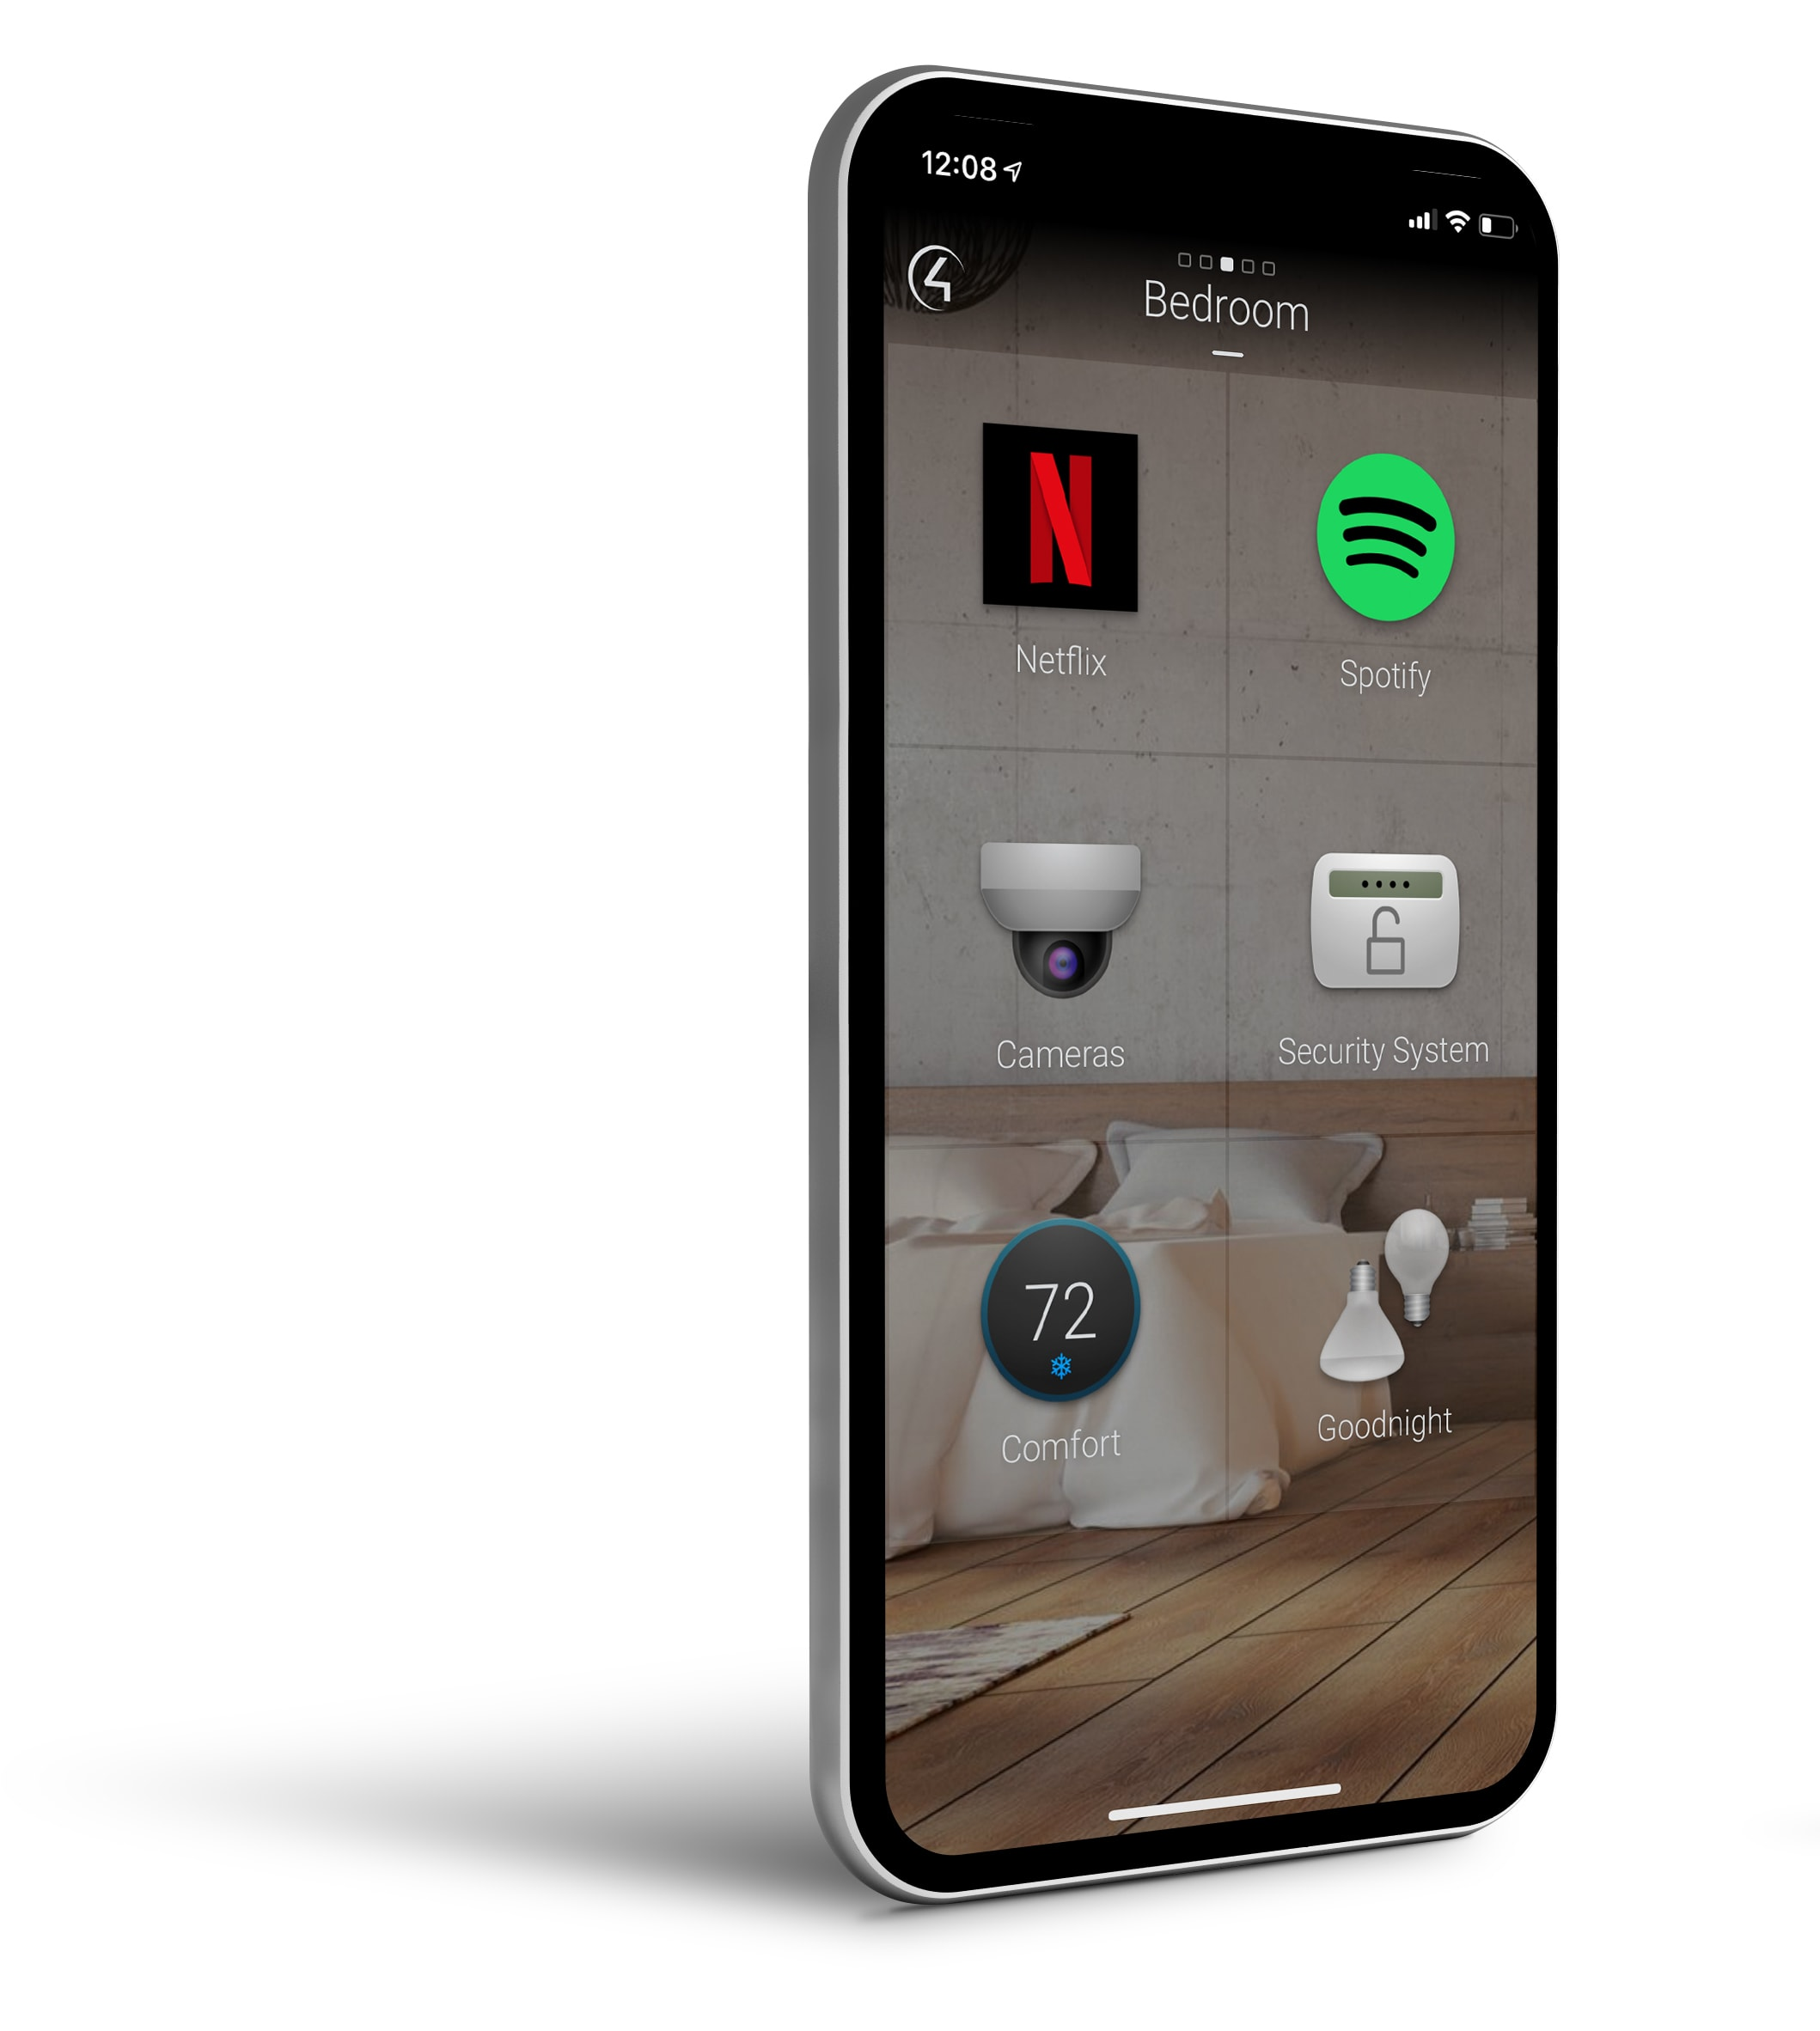 Control your smart home from your phone - at home or away